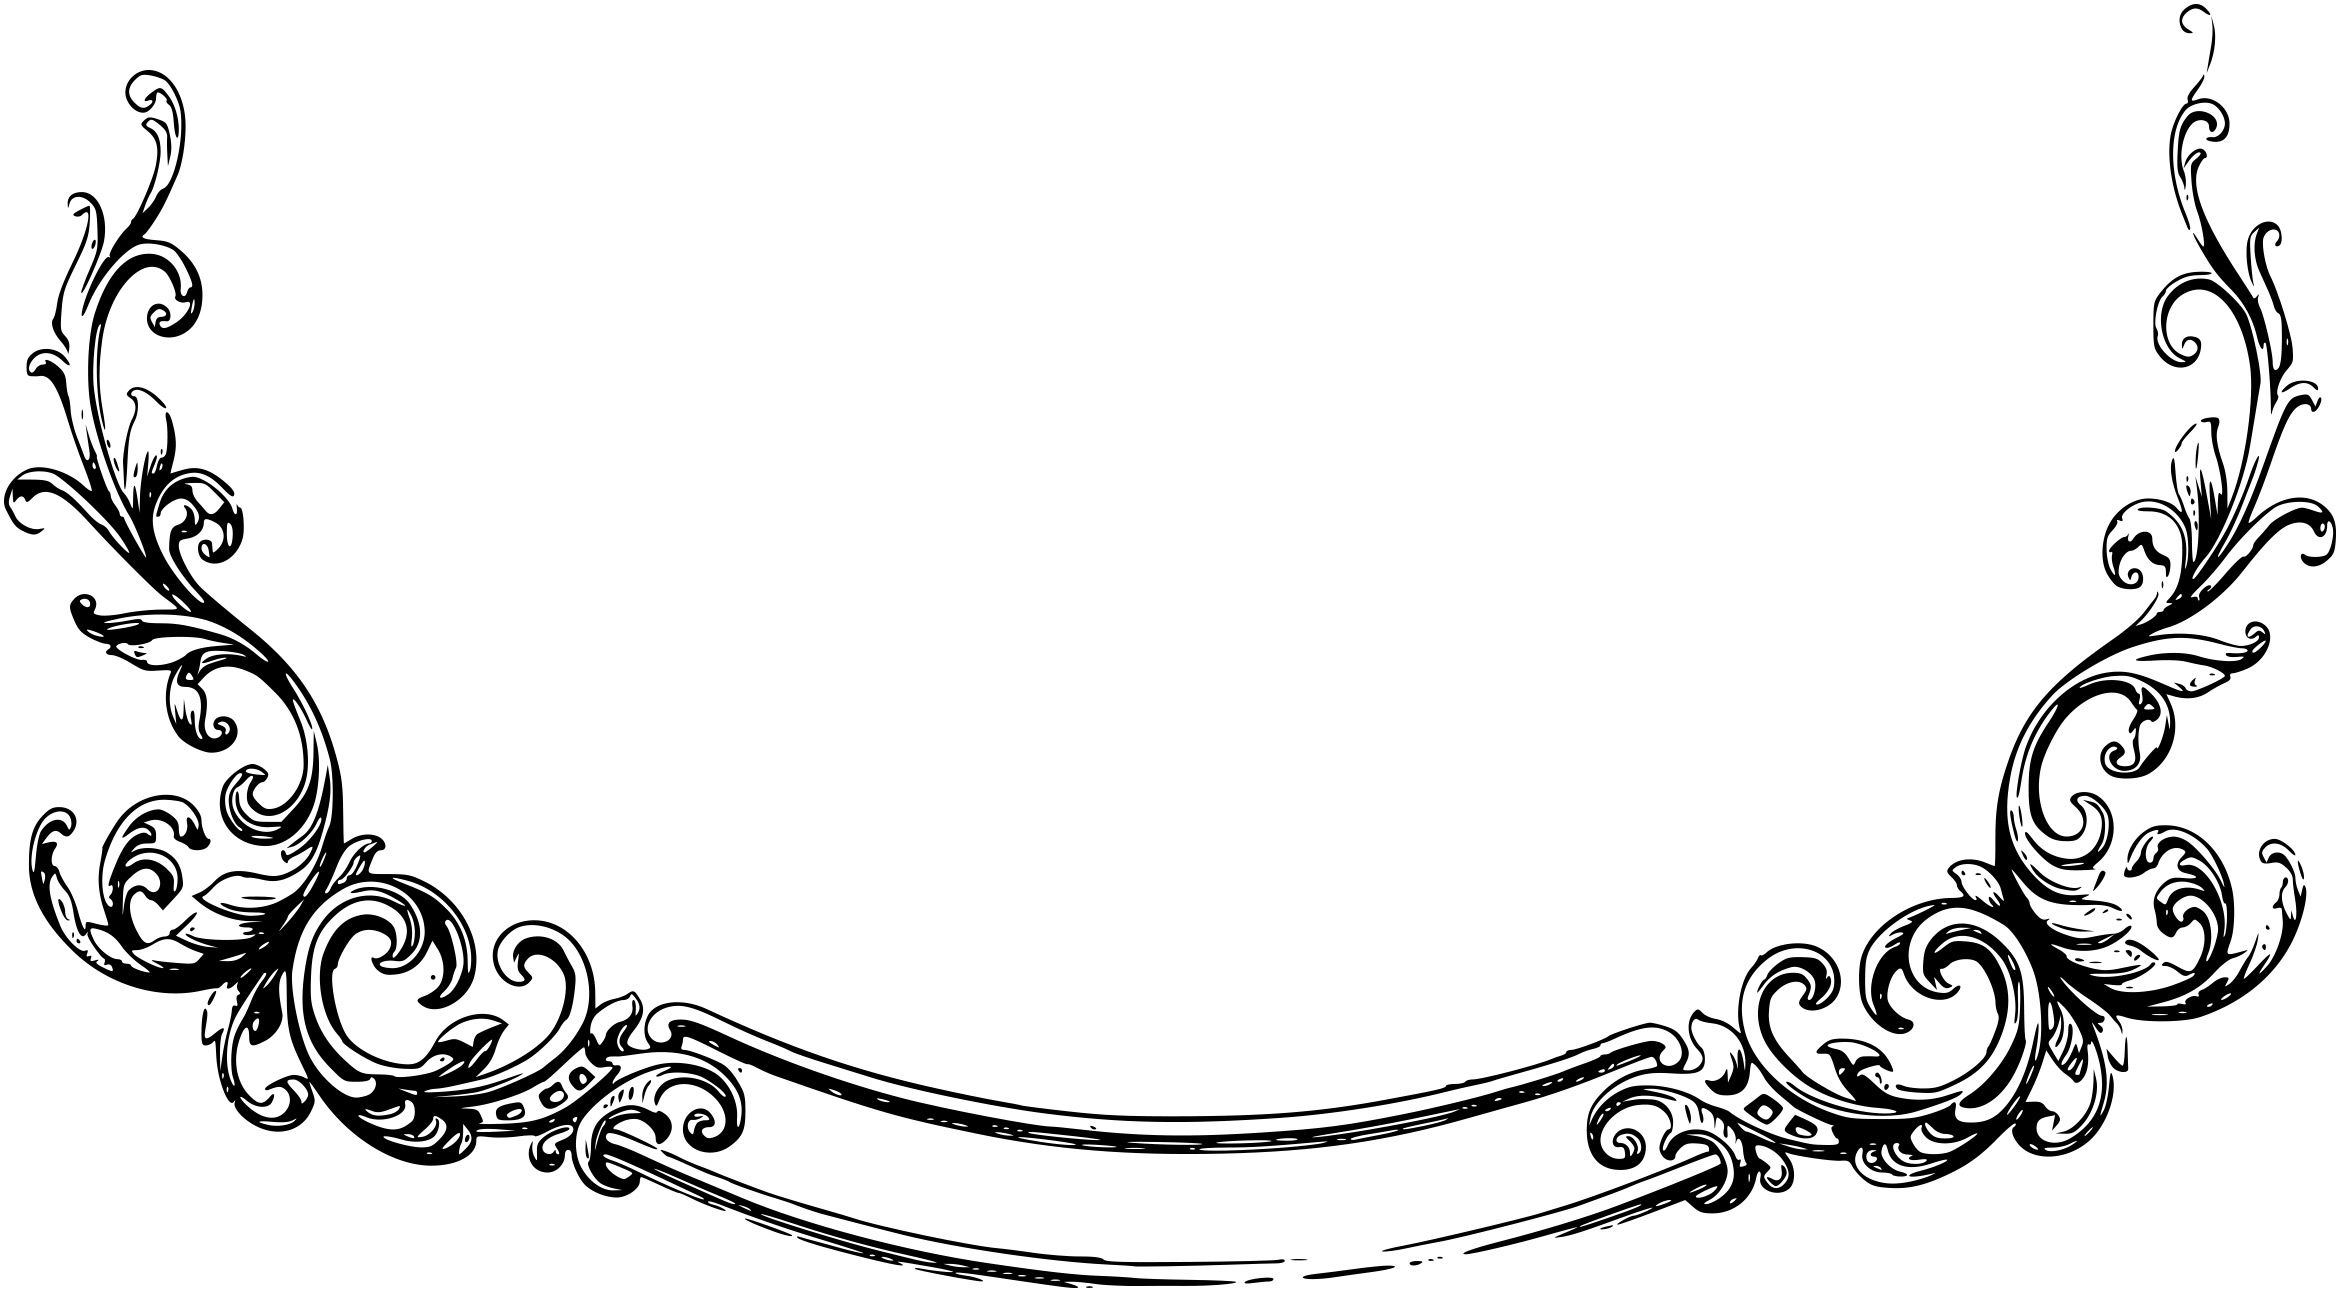 Free blue scrolled floral design clipart header vector transparent stock Scrollwork scroll artwork clipart free | Banners | Clip art, Scroll ... vector transparent stock